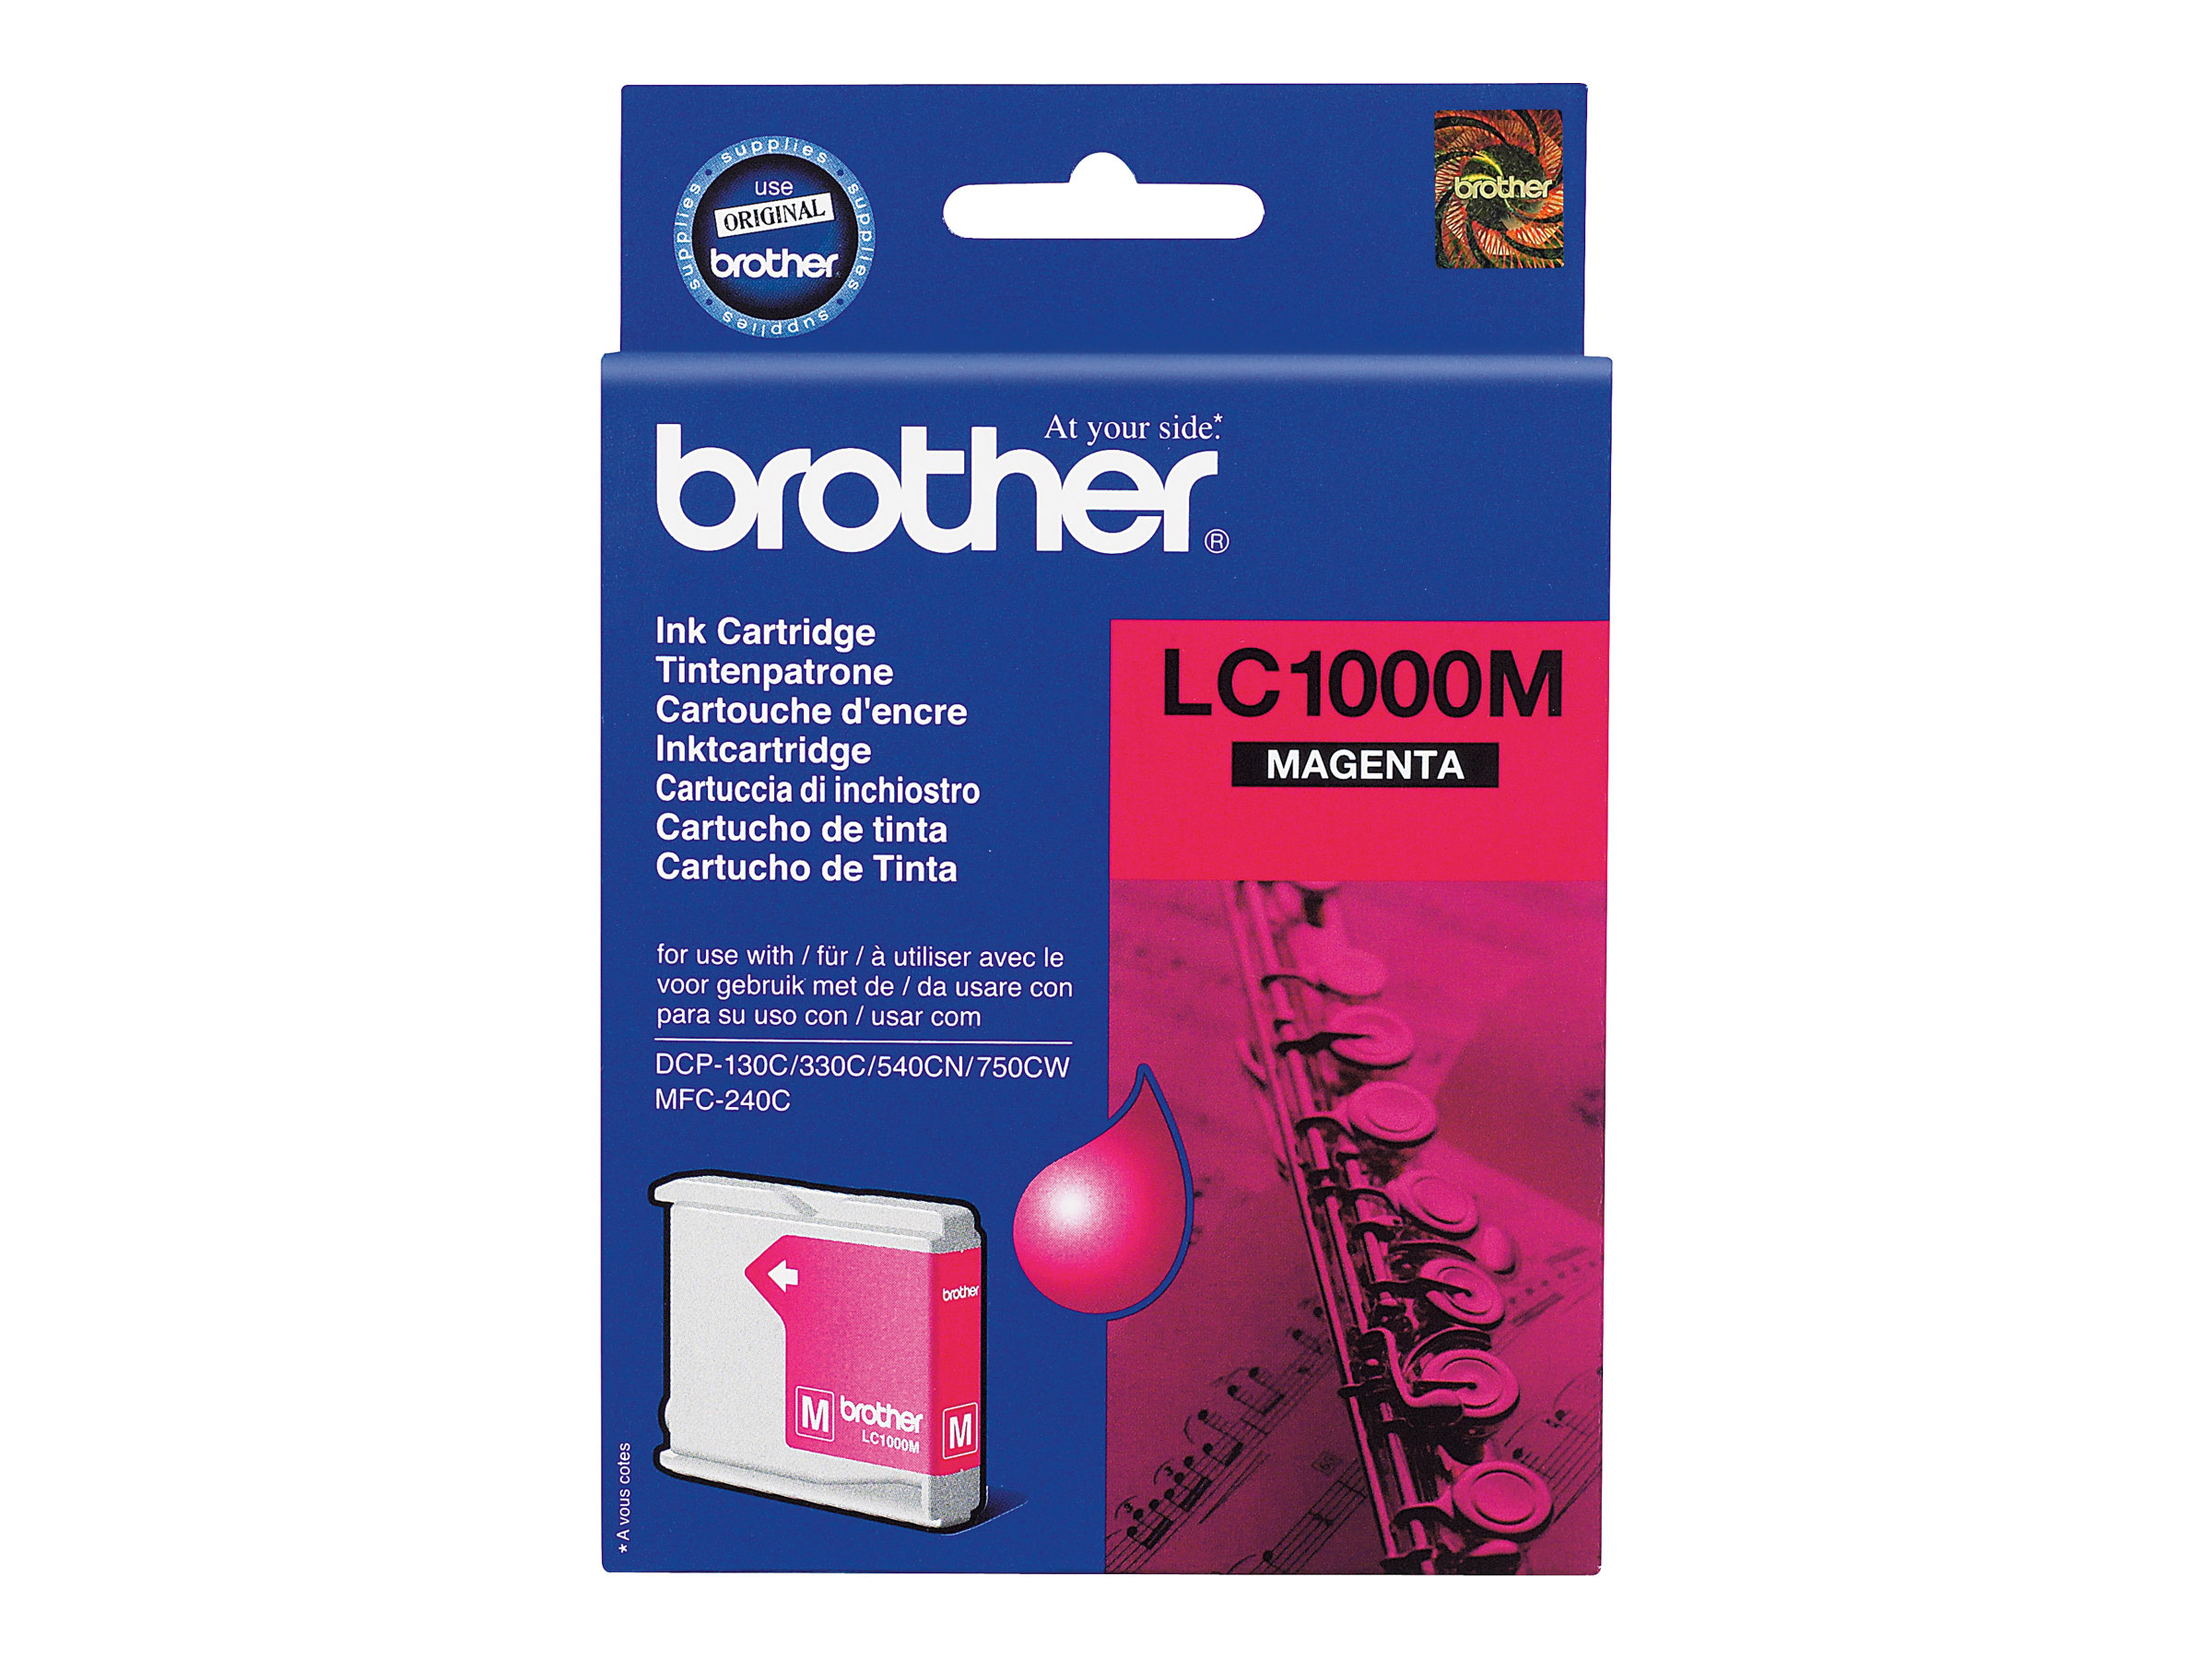 Brother LC1000M - Magenta - Original - Tintenpatrone - für Brother DCP-350, 353, 357, 560, 750, 770, MFC-3360, 465, 5460, 5860, 660, 680, 845, 885